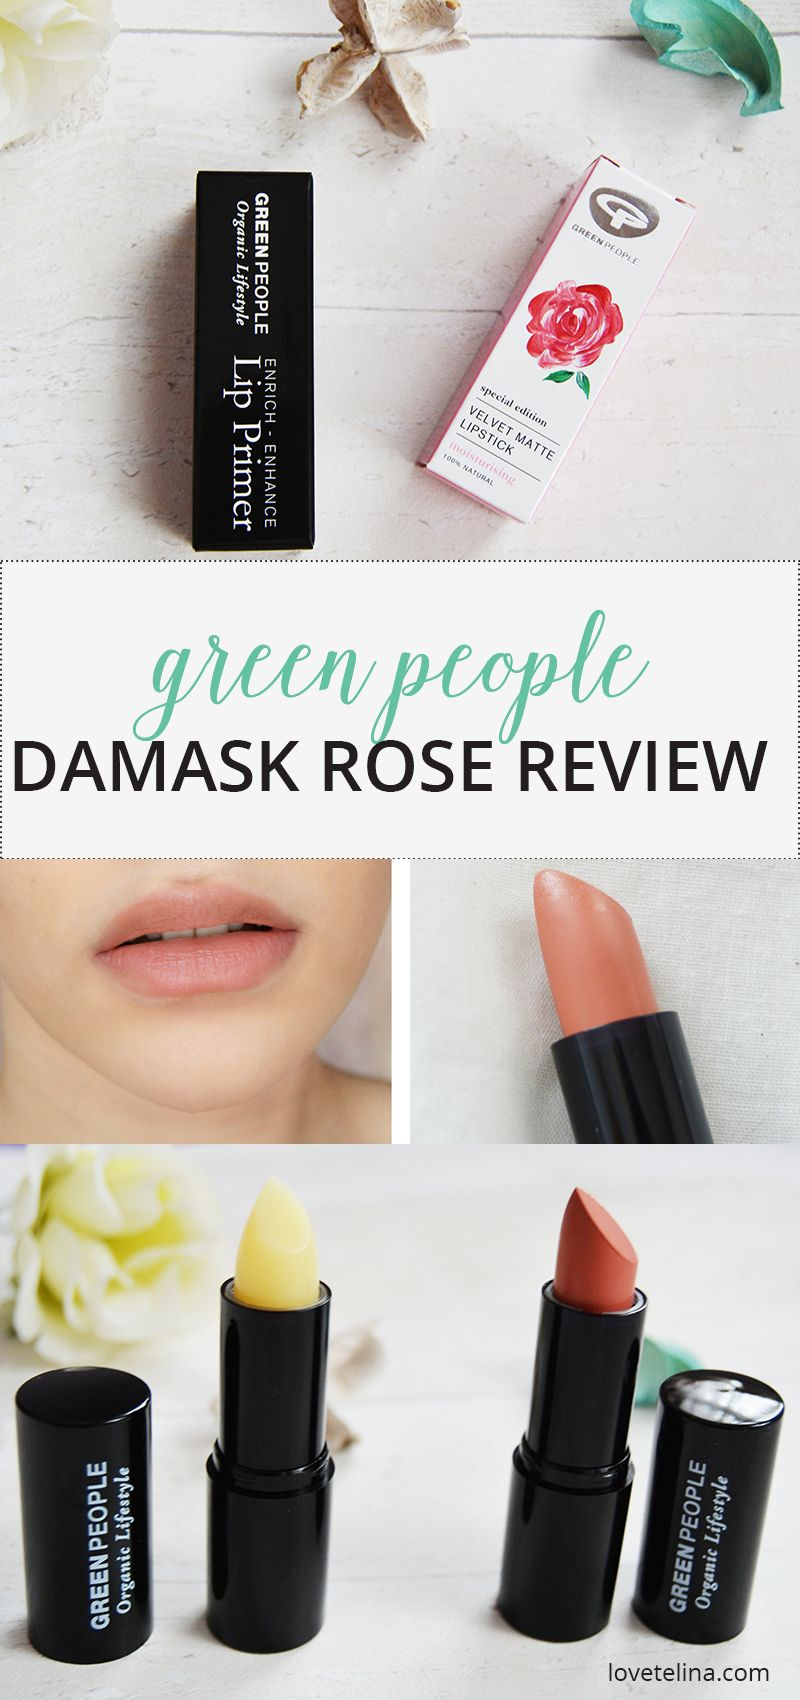 Damask Rose is a special edition velvet matte lipstick shade from ...